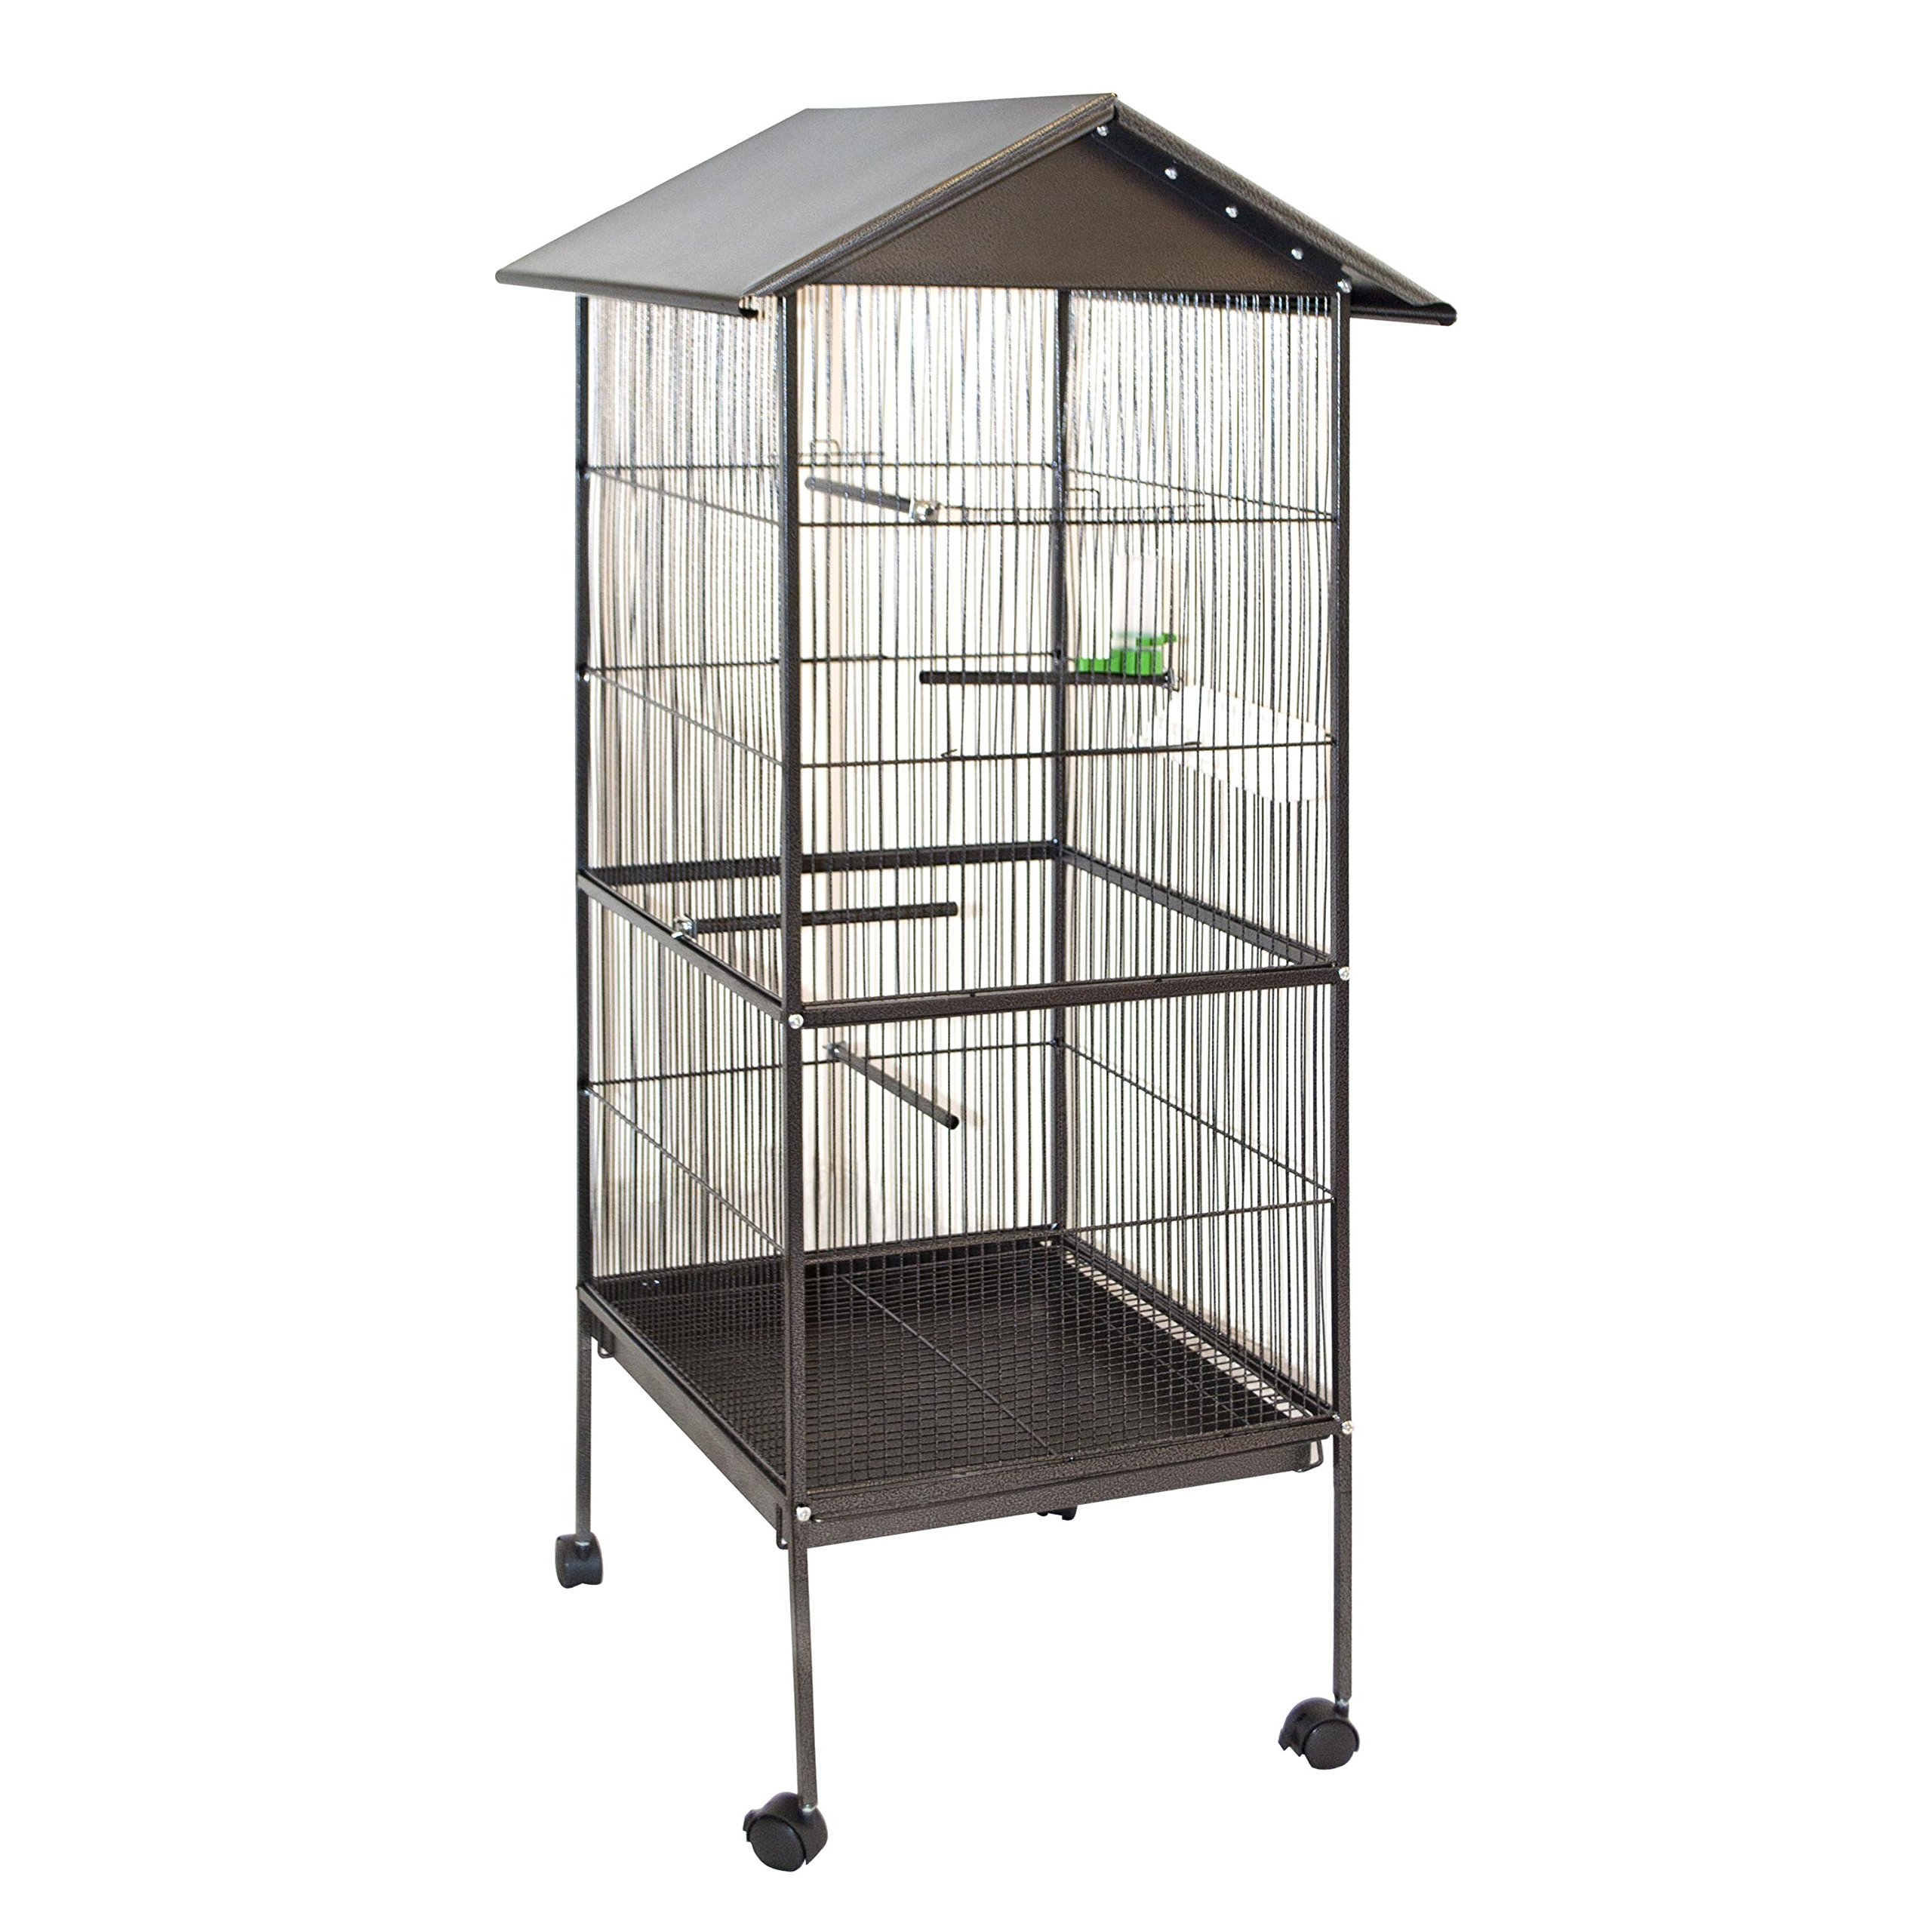 ALEKO BC002 Large Steel 20X20X61 Inch Bird Cage Pet House Parrot Macaw Finch Cockatiel Conure Cage by ALEKO